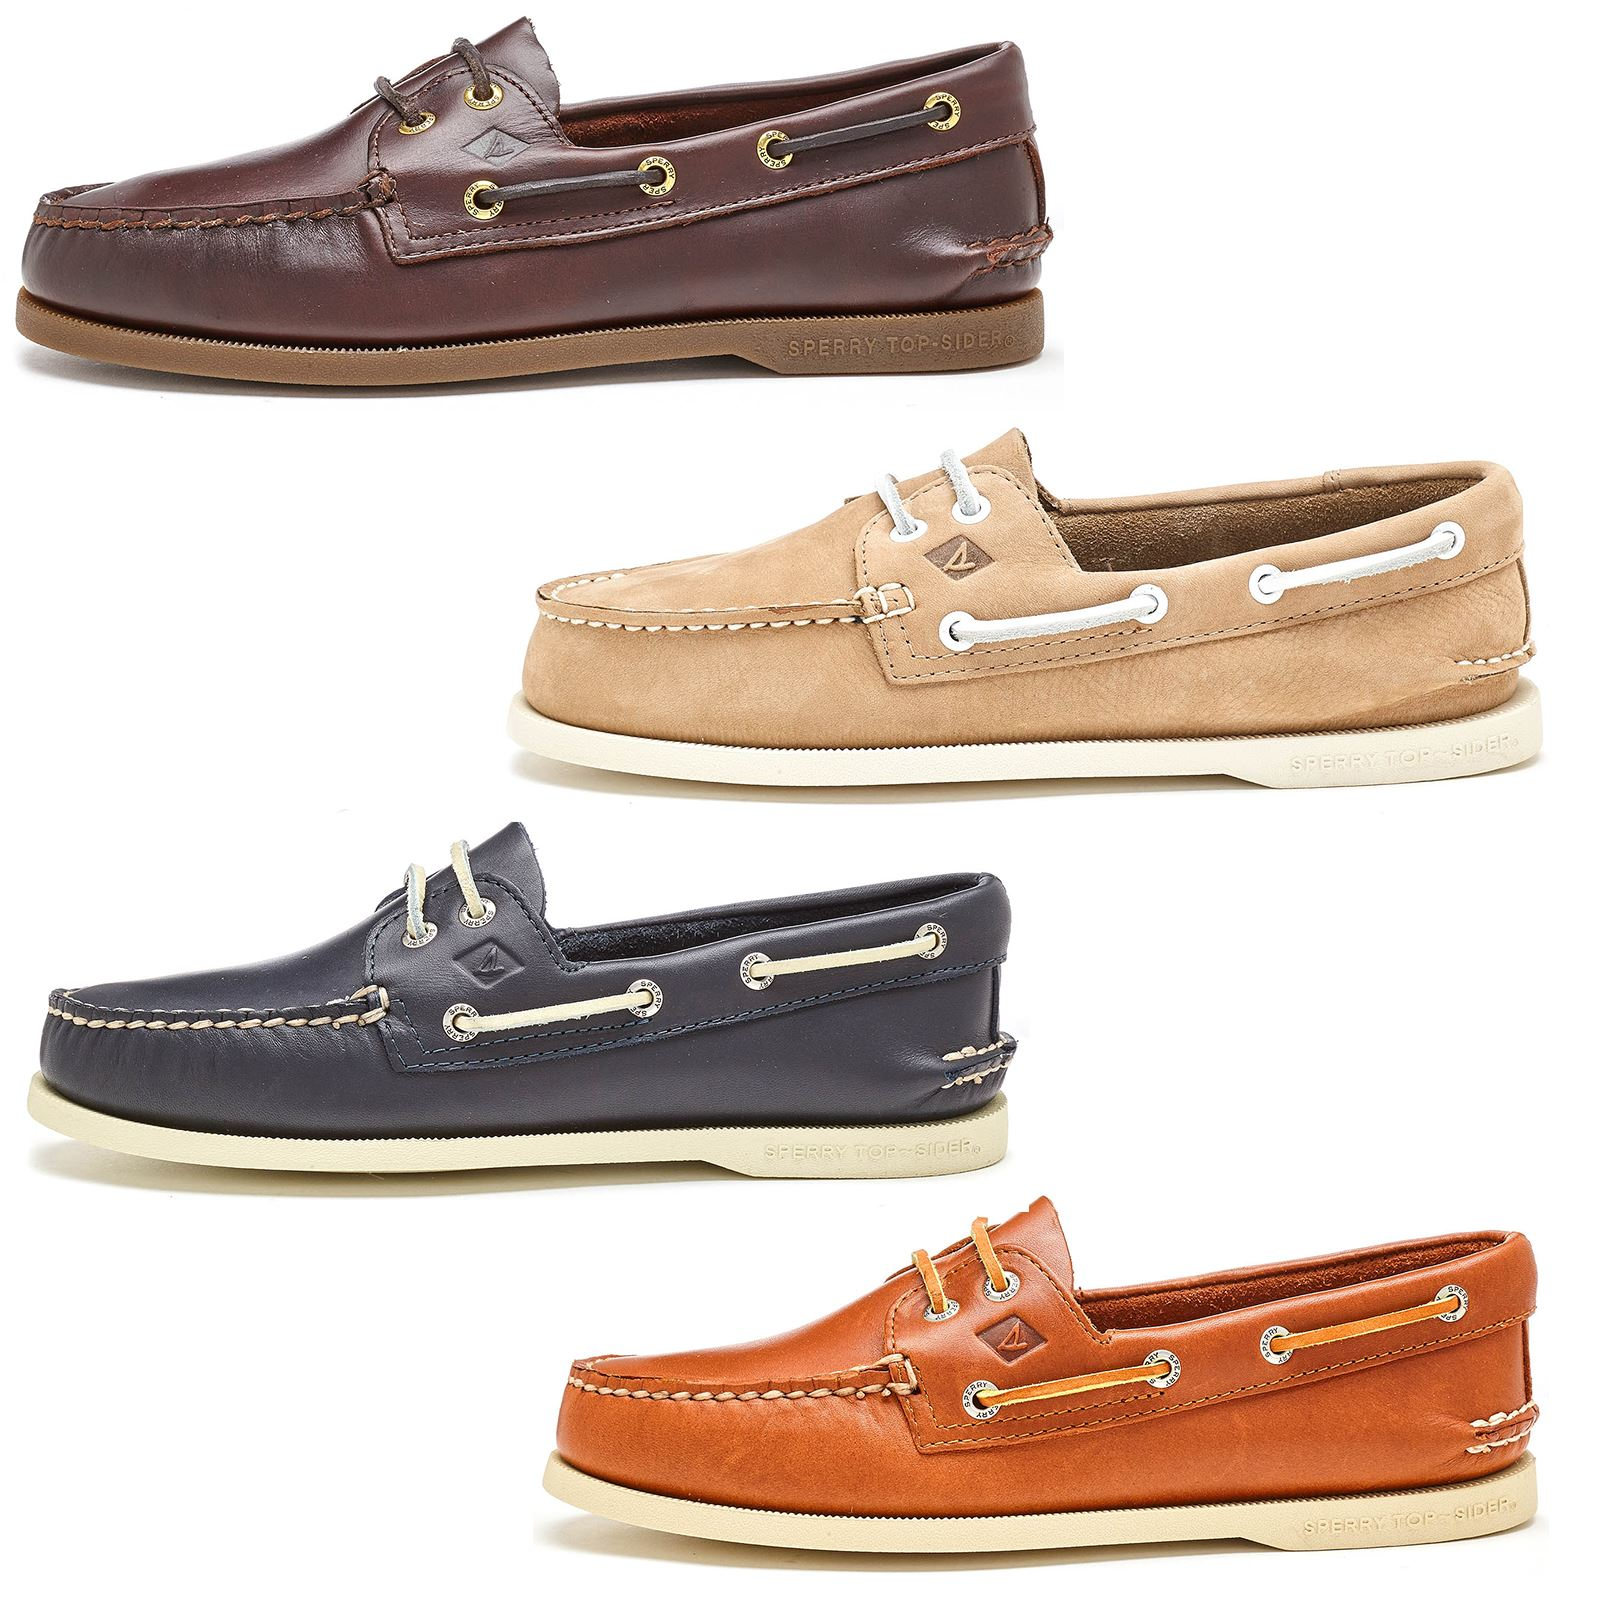 2d2159920 Details about Sperry Authentic Original 2-Eye Boat Deck Shoes in Brown  Taupe   Blue